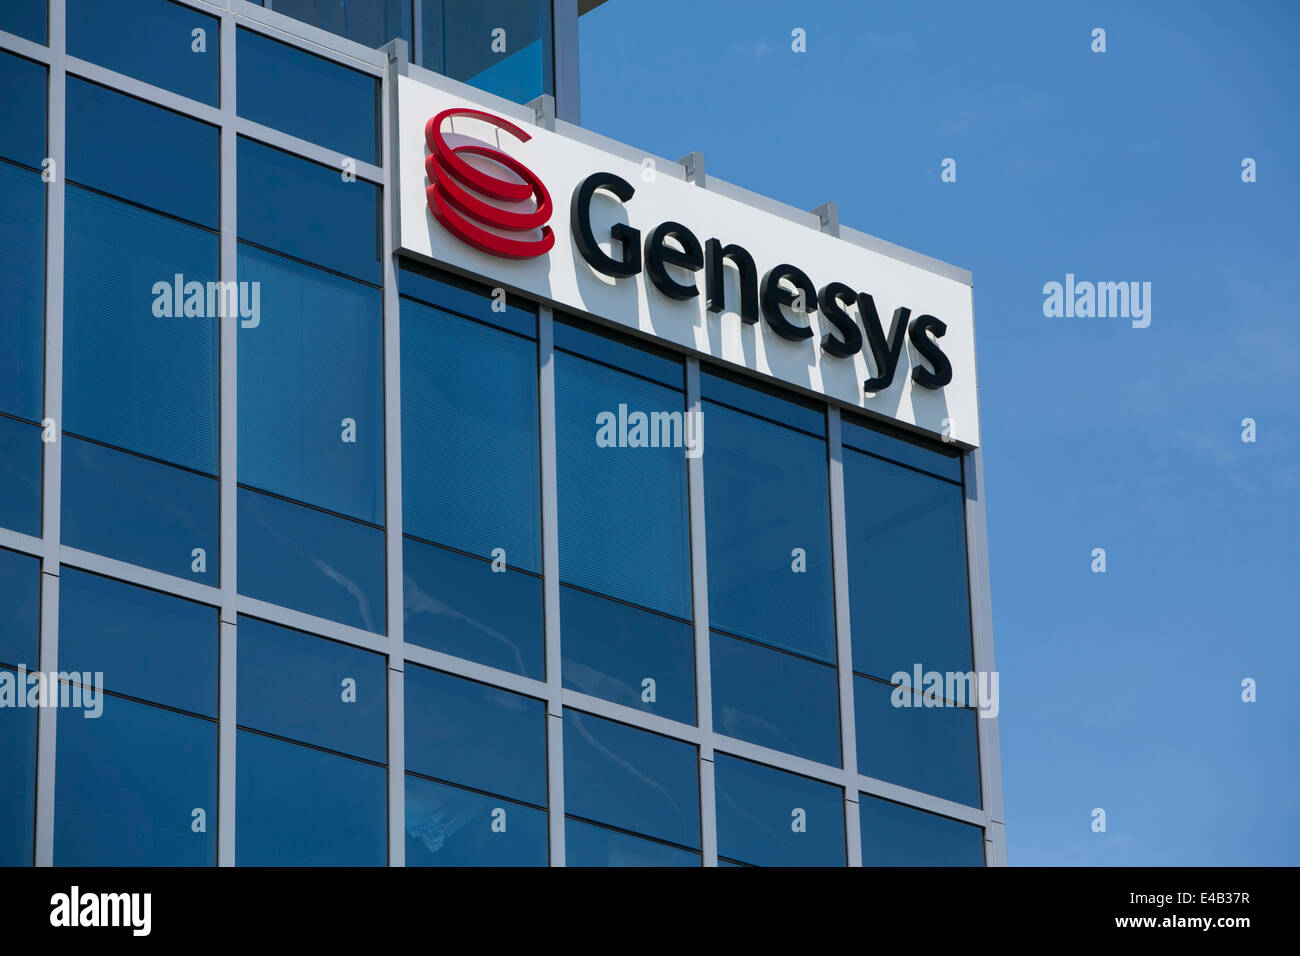 An office building occupied by the telecommunications technology company Genesys.  - Stock Image